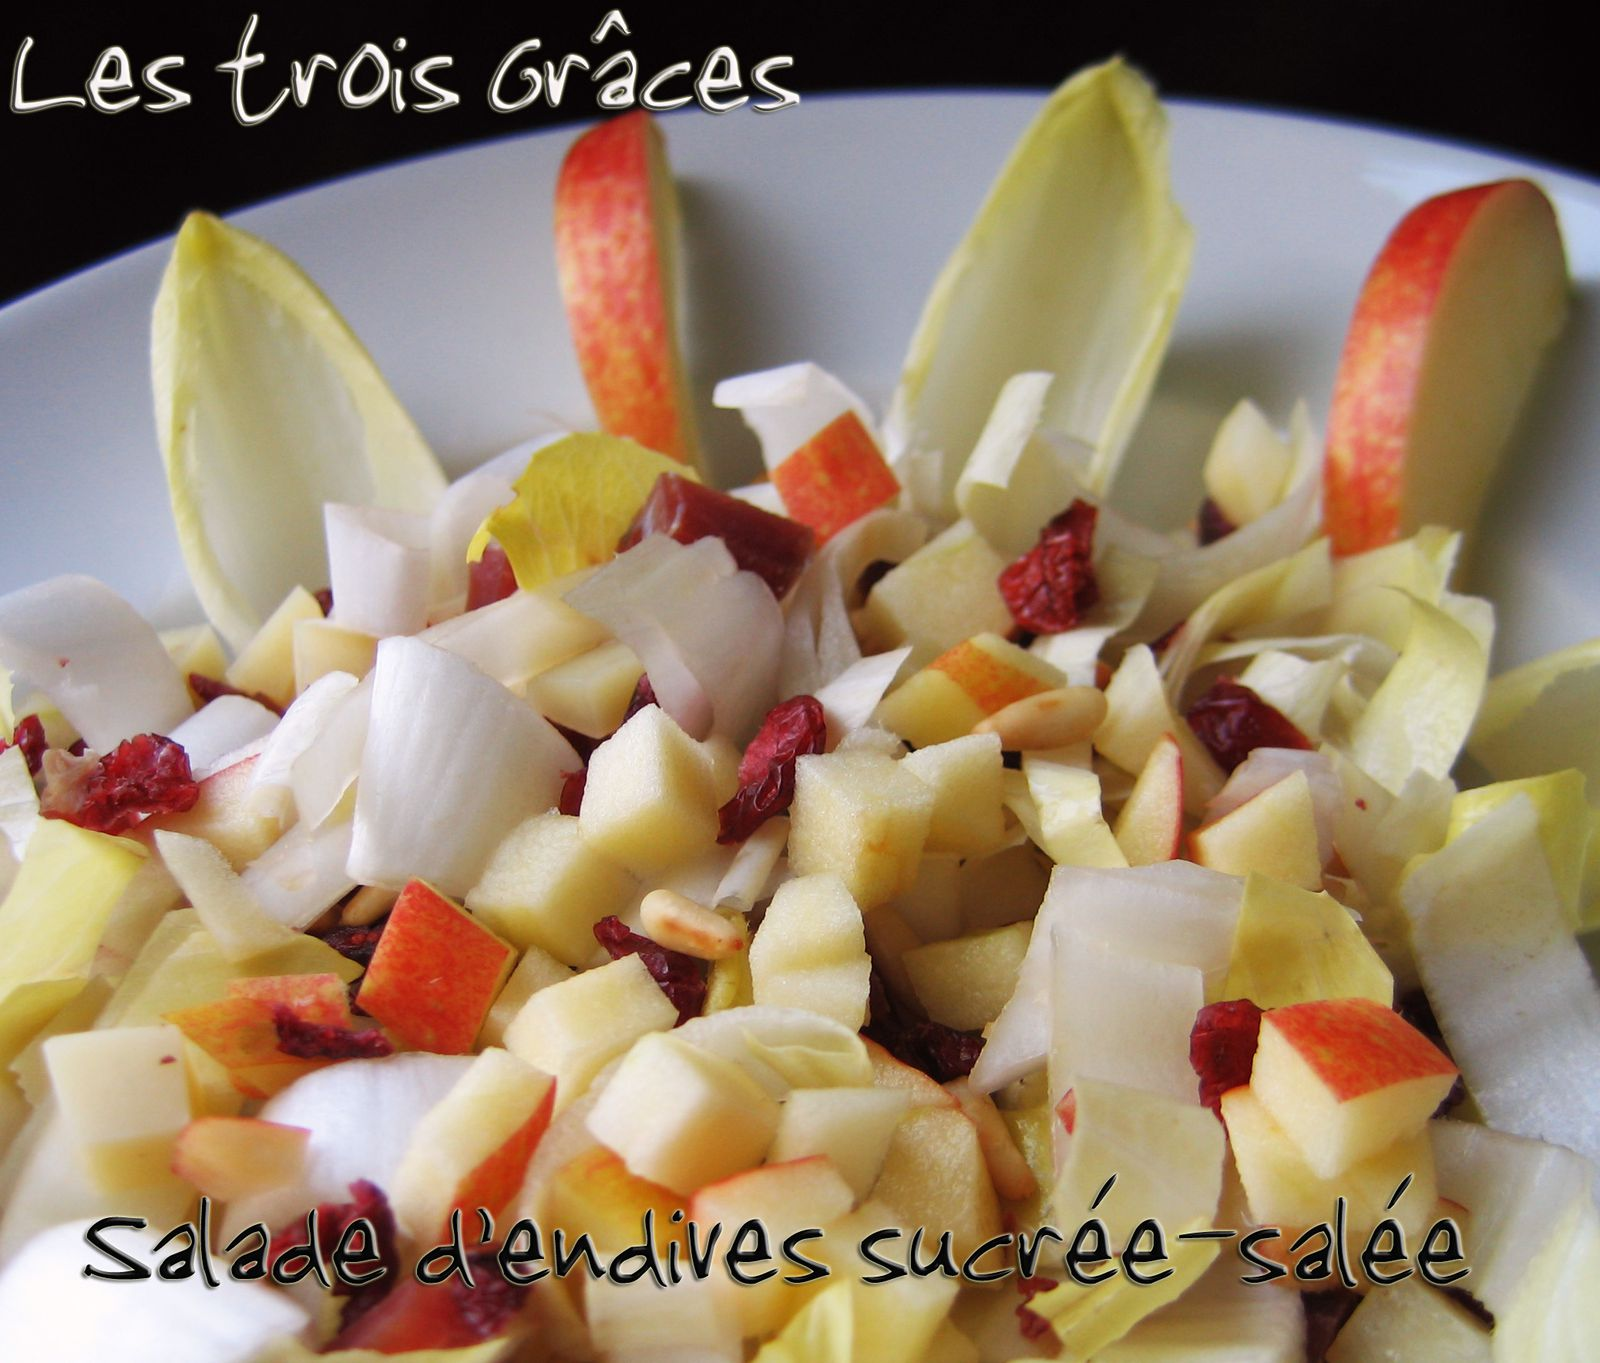 http://idata.over-blog.com/1/62/27/38/les-3-graces/saladeendives.jpg